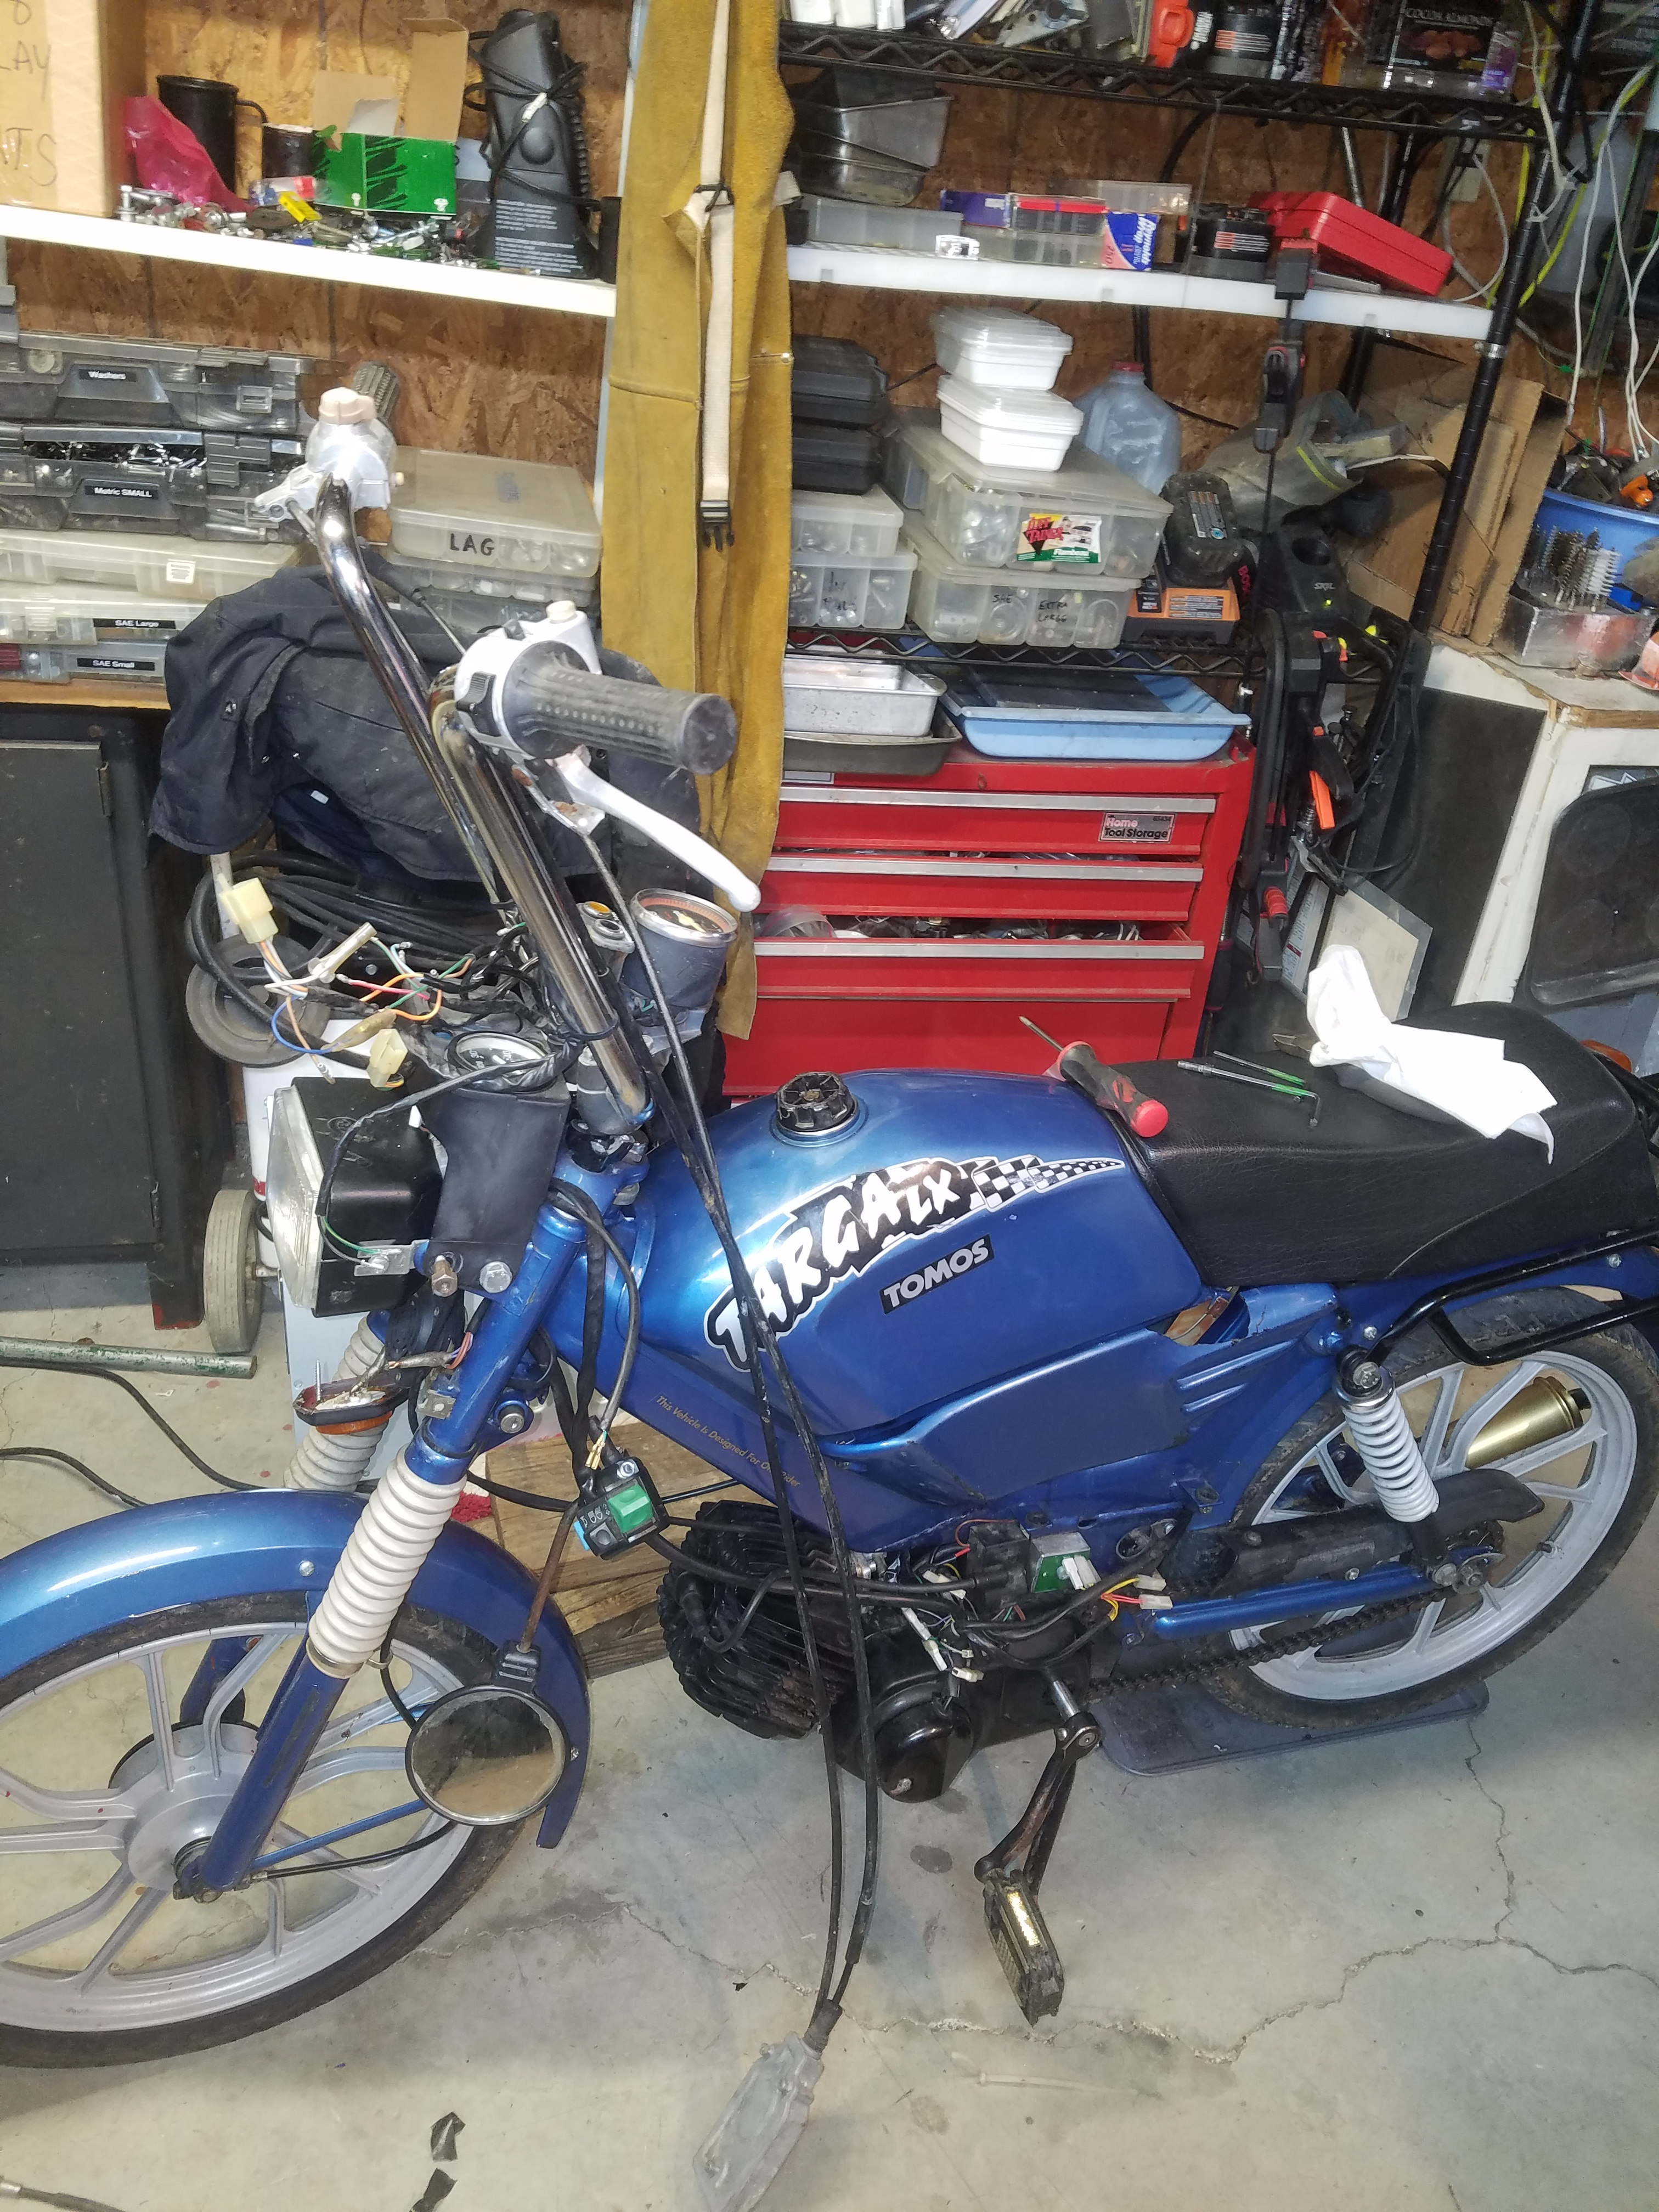 Moped virgin here   Be gentle   New to me 2000 Tomos Targa